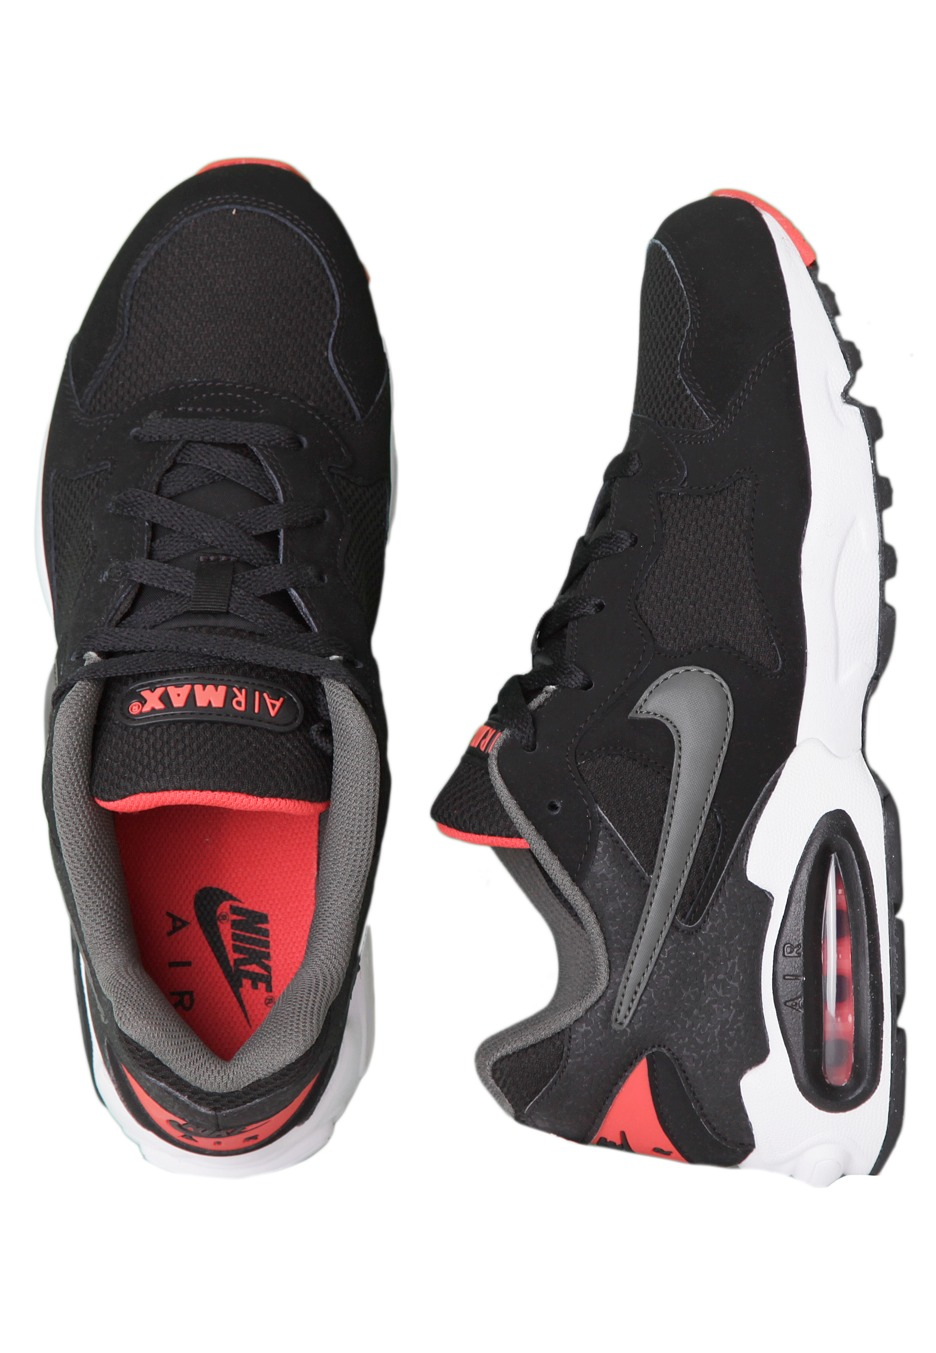 c942b00888a Nike - Air Max Triax 94 Black Dark Grey Light Crimson - Shoes -  Impericon.com Worldwide